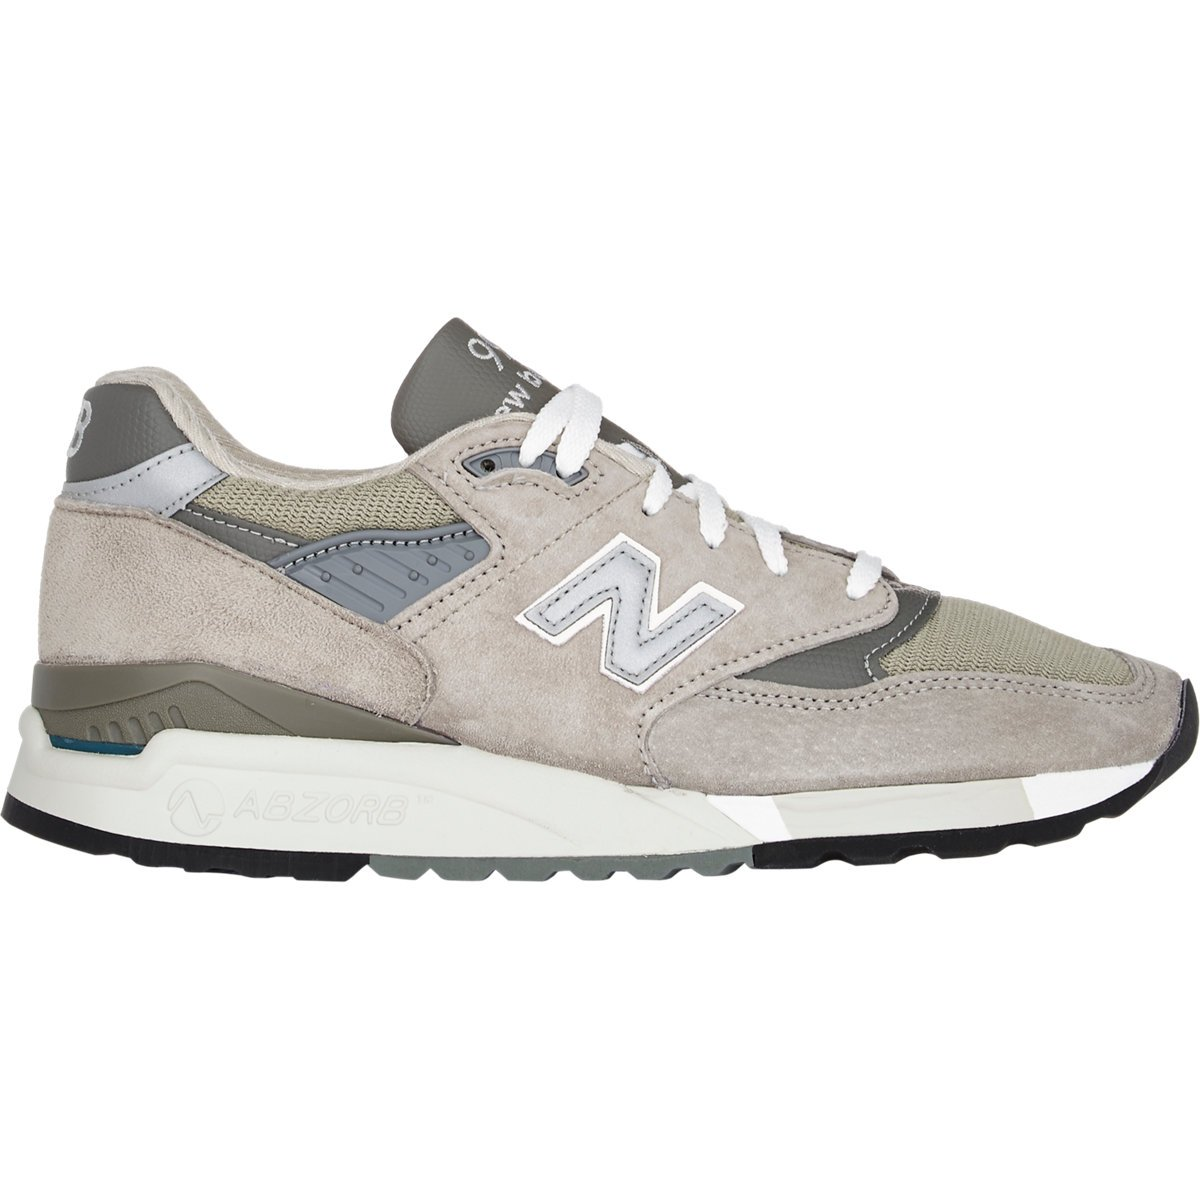 lyst new balance 998 sneakers in gray for men. Black Bedroom Furniture Sets. Home Design Ideas